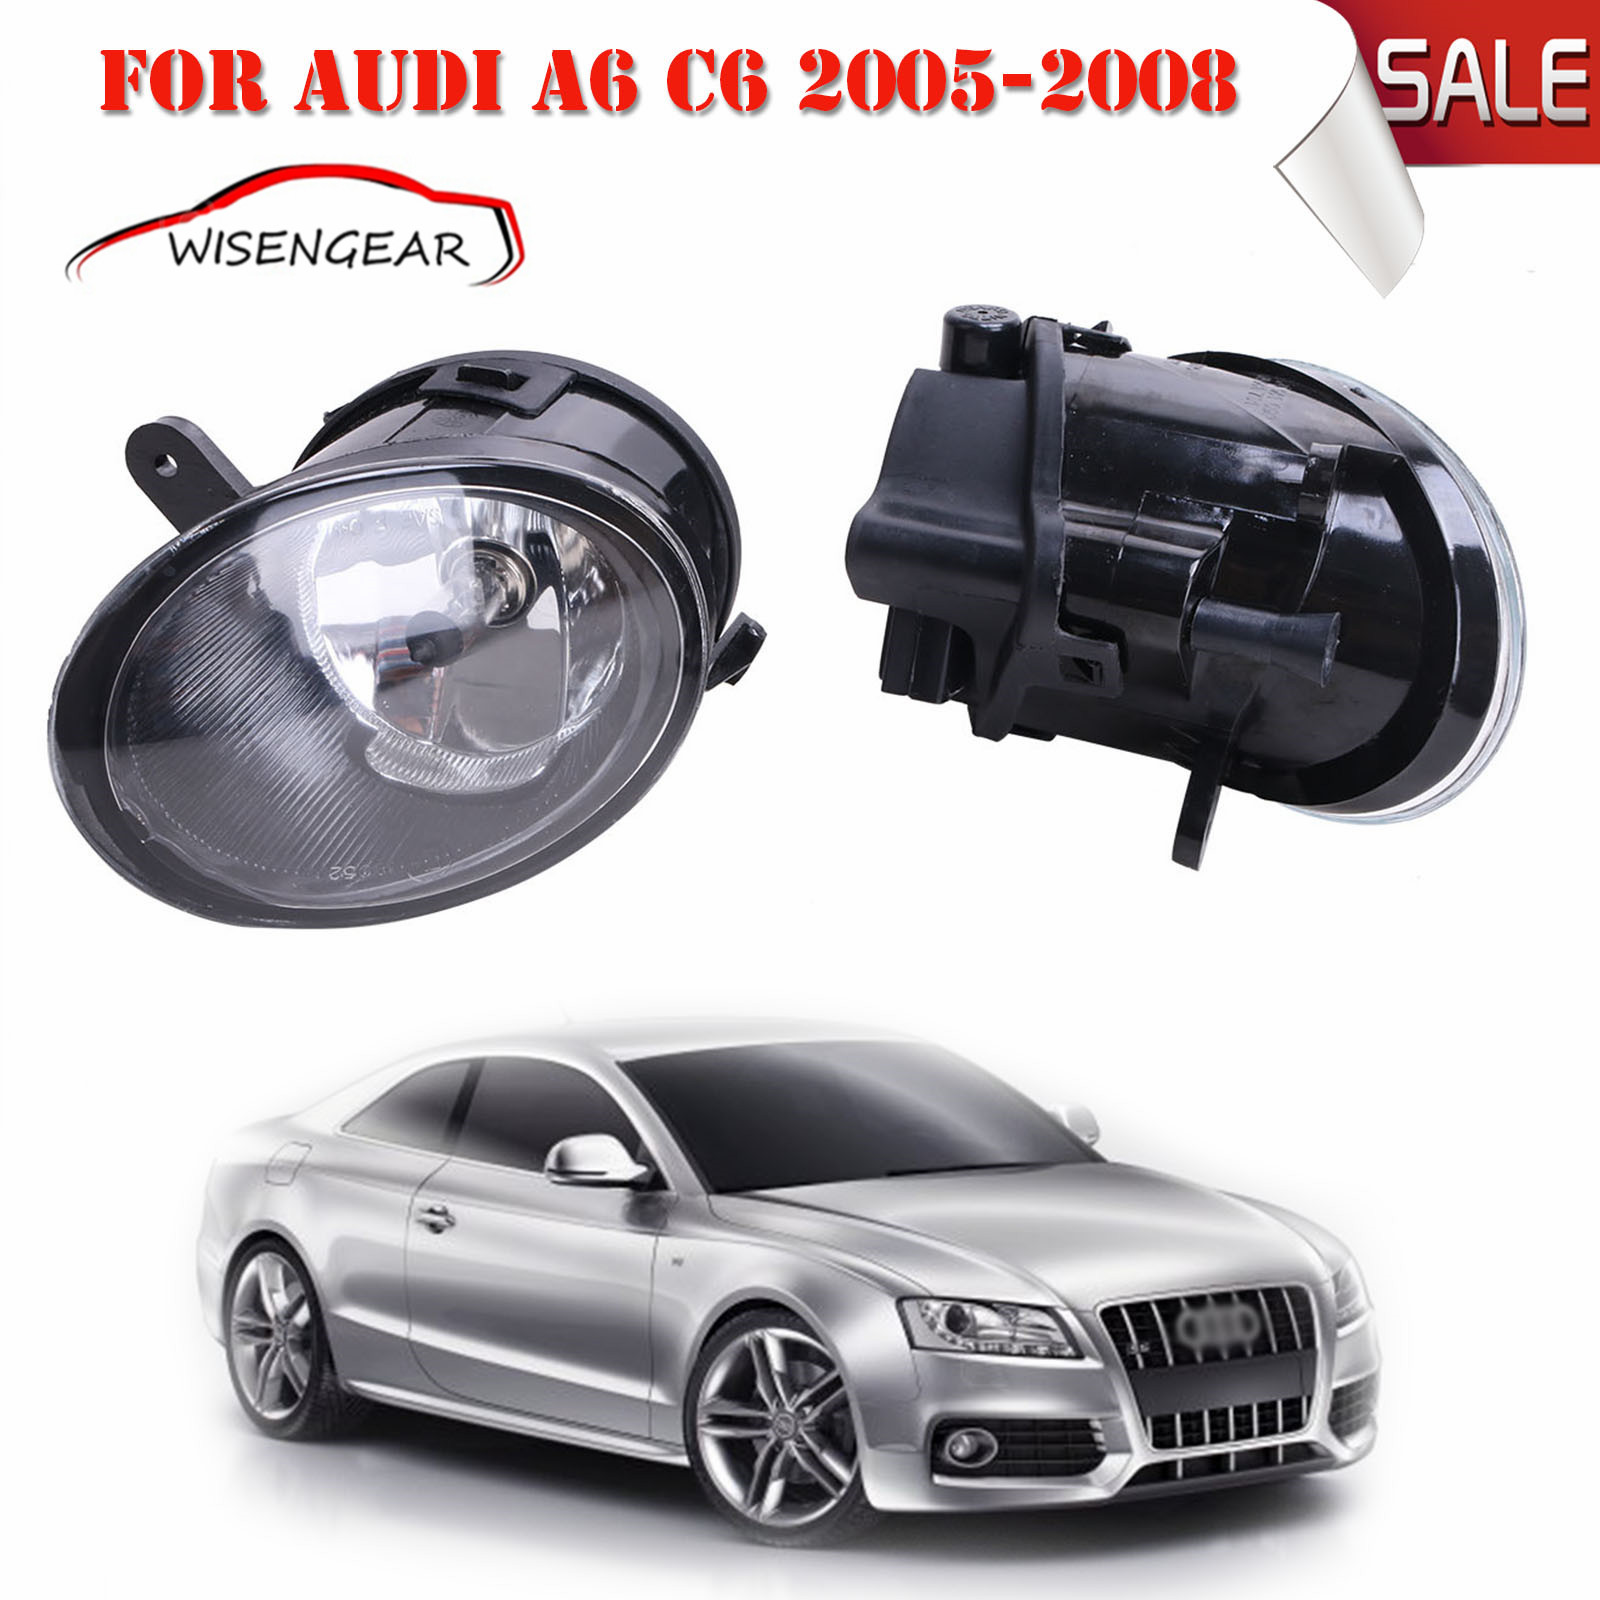 Car Light Left &amp; Right Front Fog Driving Light Fog Lamps with H7 Bulbs For AUDI A6 C6 2005 2006 2007 2008 C/5<br>